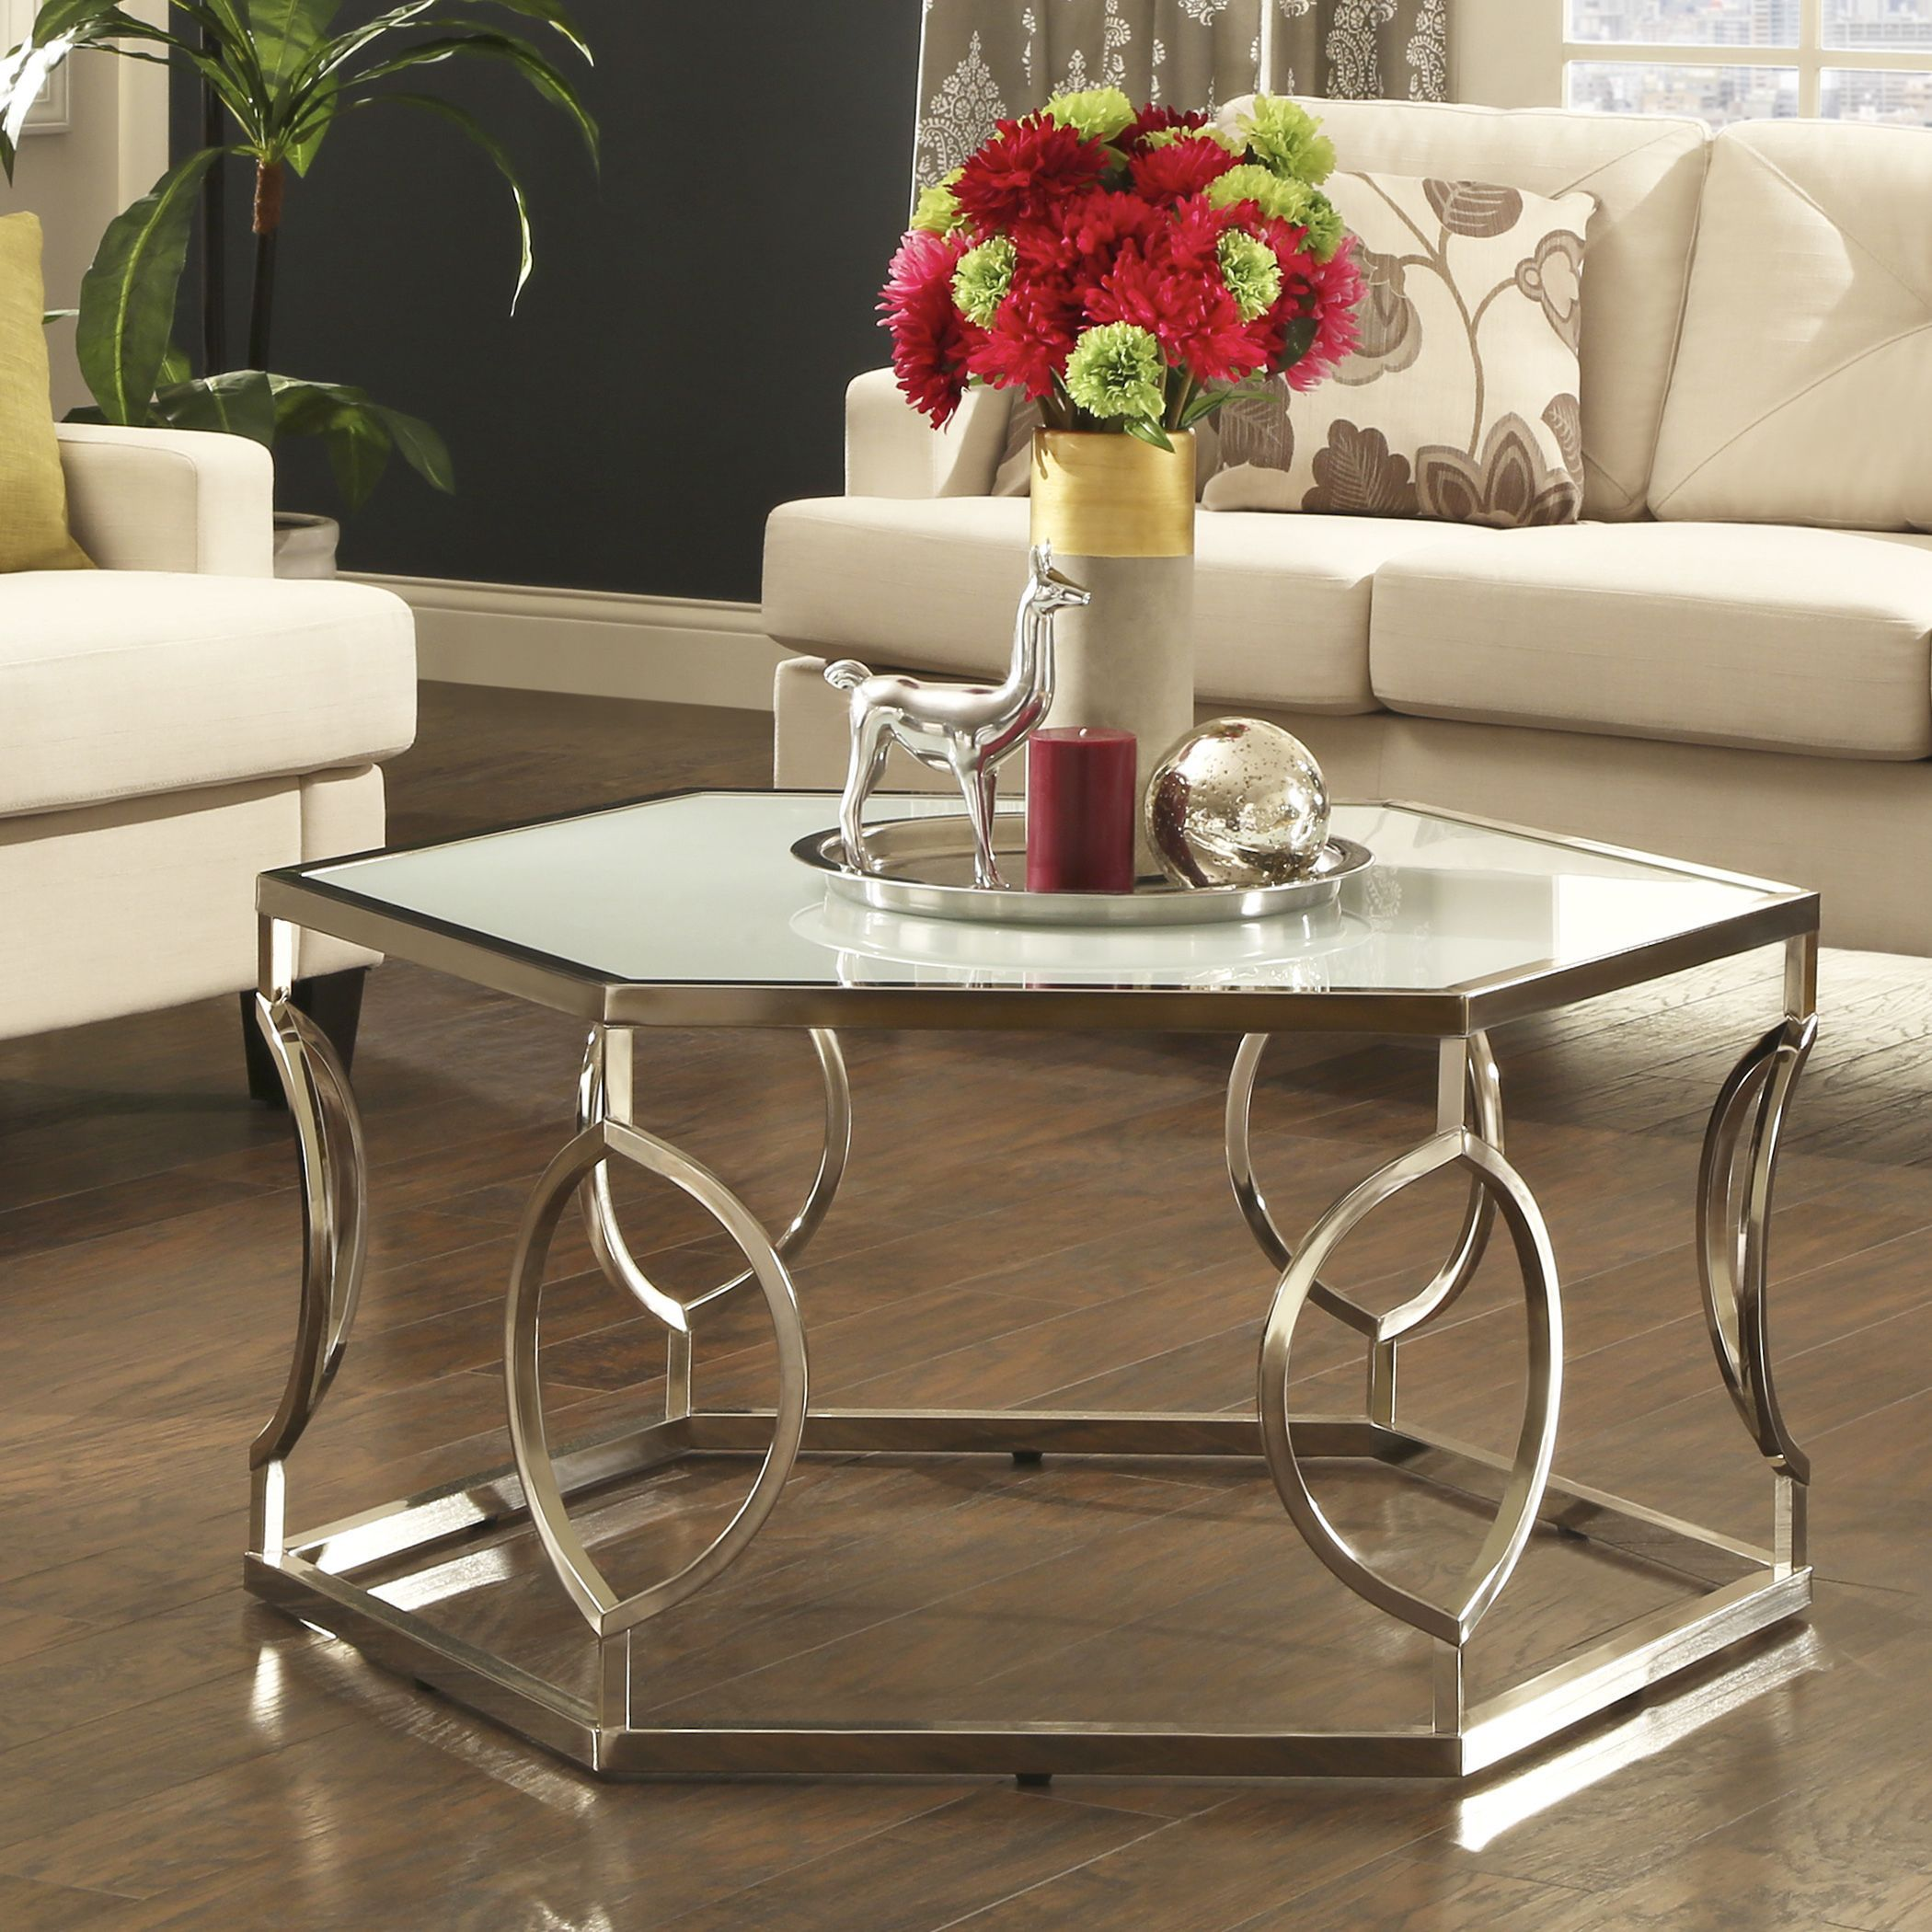 Overstock Com Online Shopping Bedding Furniture Electronics Jewelry Clothing More Glass Cocktail Tables Contemporary Coffee Table Cocktail Tables Living Room [ 2100 x 2100 Pixel ]